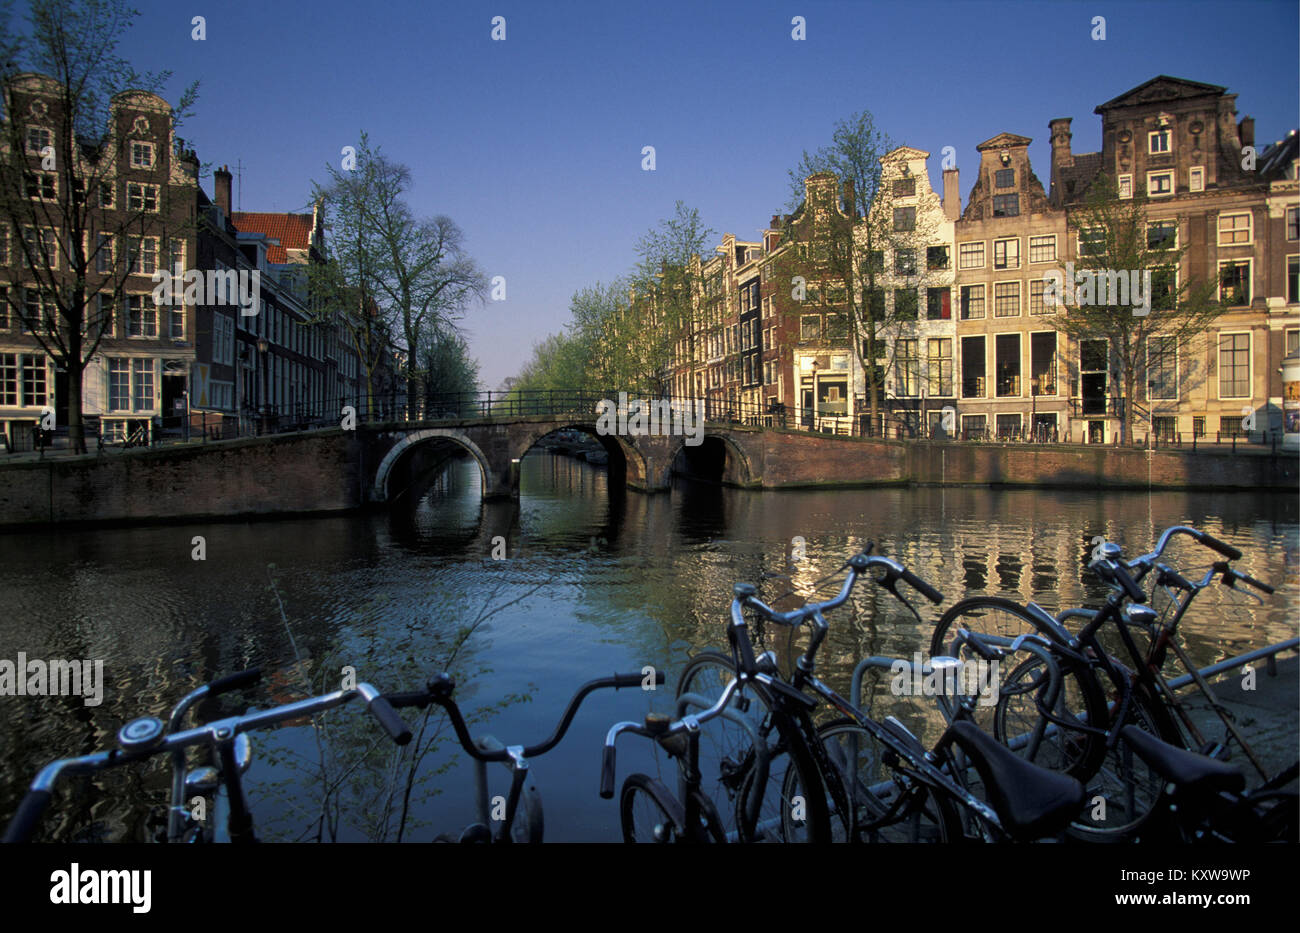 The Netherlands, Amsterdam, Canal called Herengracht.17th century. Bicycles. - Stock Image